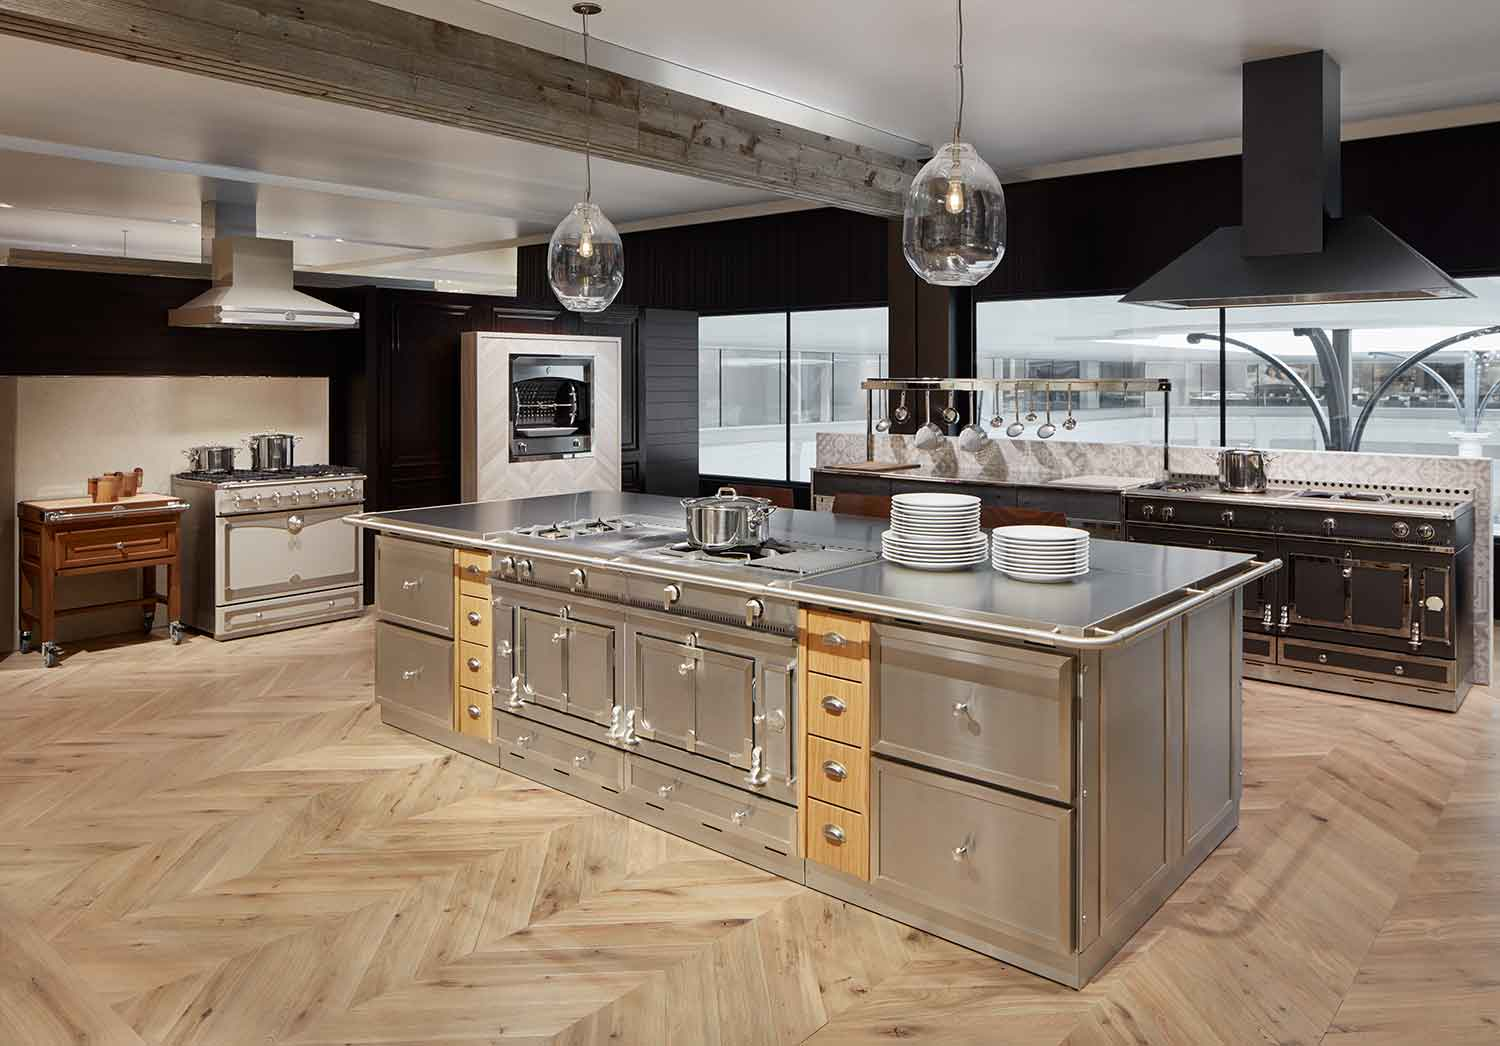 Ordinaire La Cornue Kitchen In The Abt Inspiration Studio